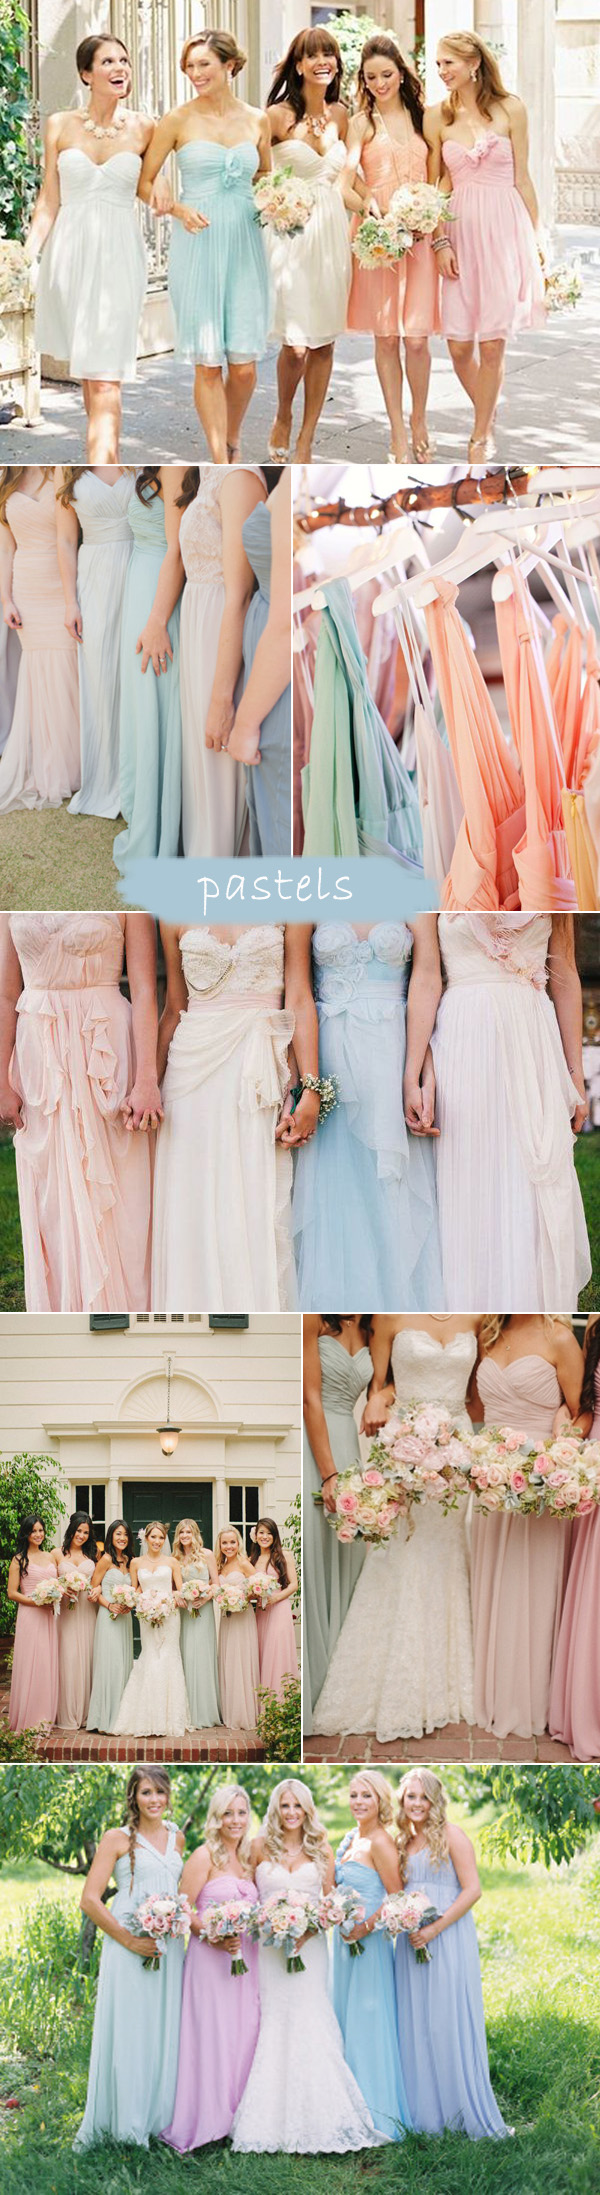 Top 7 trends for bridesmaid dresses 2015 elegantweddinginvites pastel color inspired spring summer bridesmaid dresses 2015 trends ombrellifo Image collections